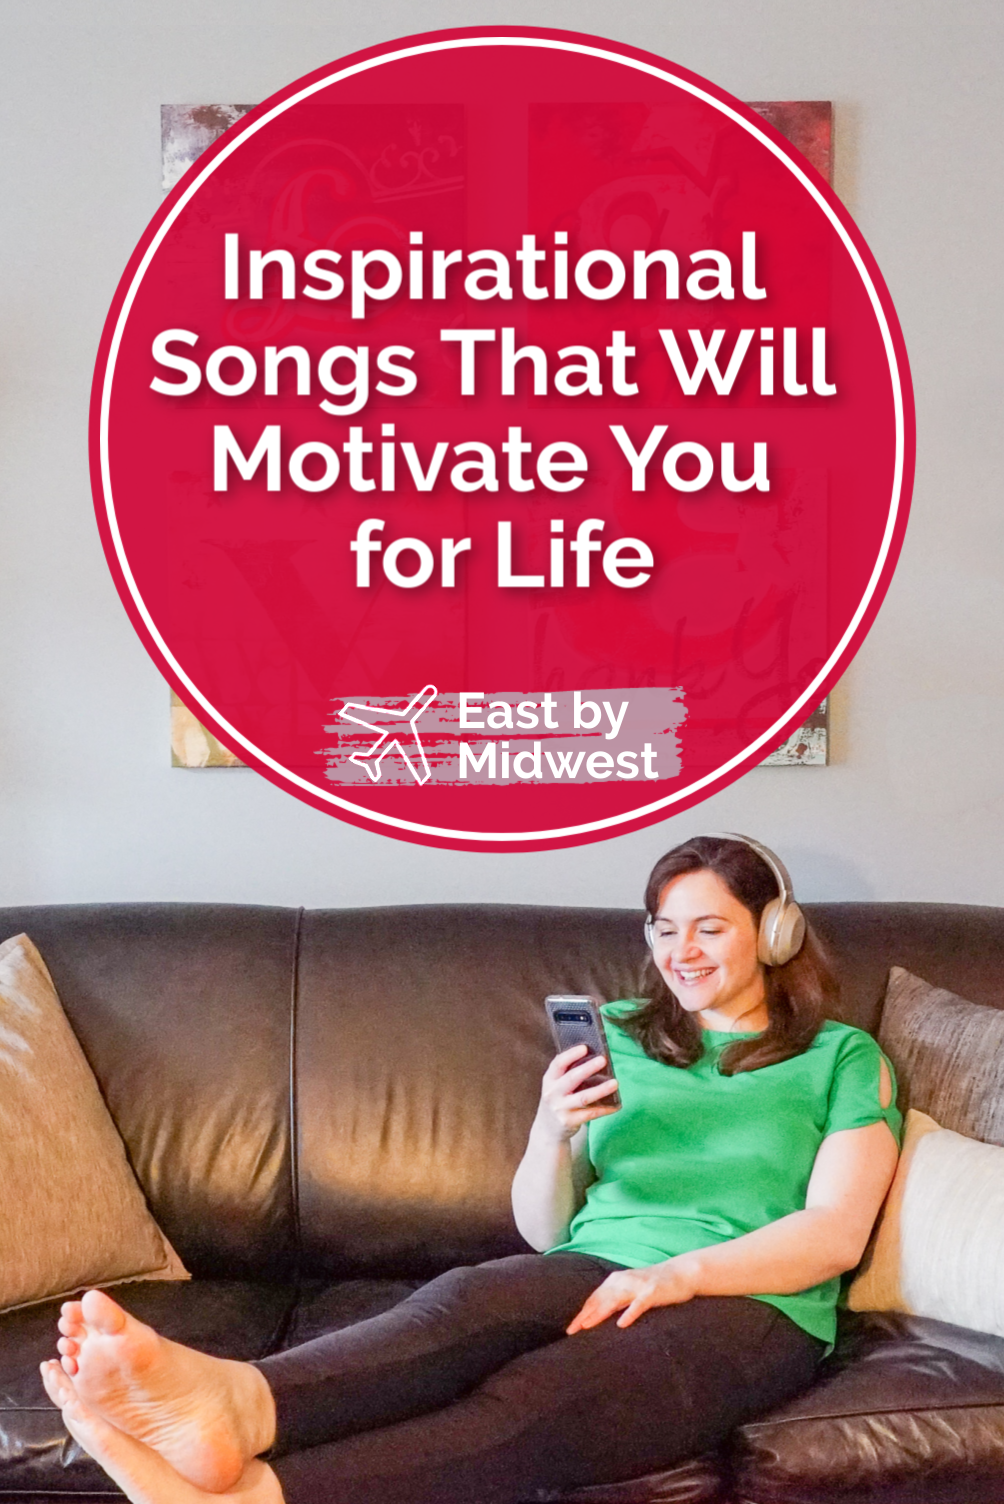 Inspirational Songs That Will Motivate You for Life